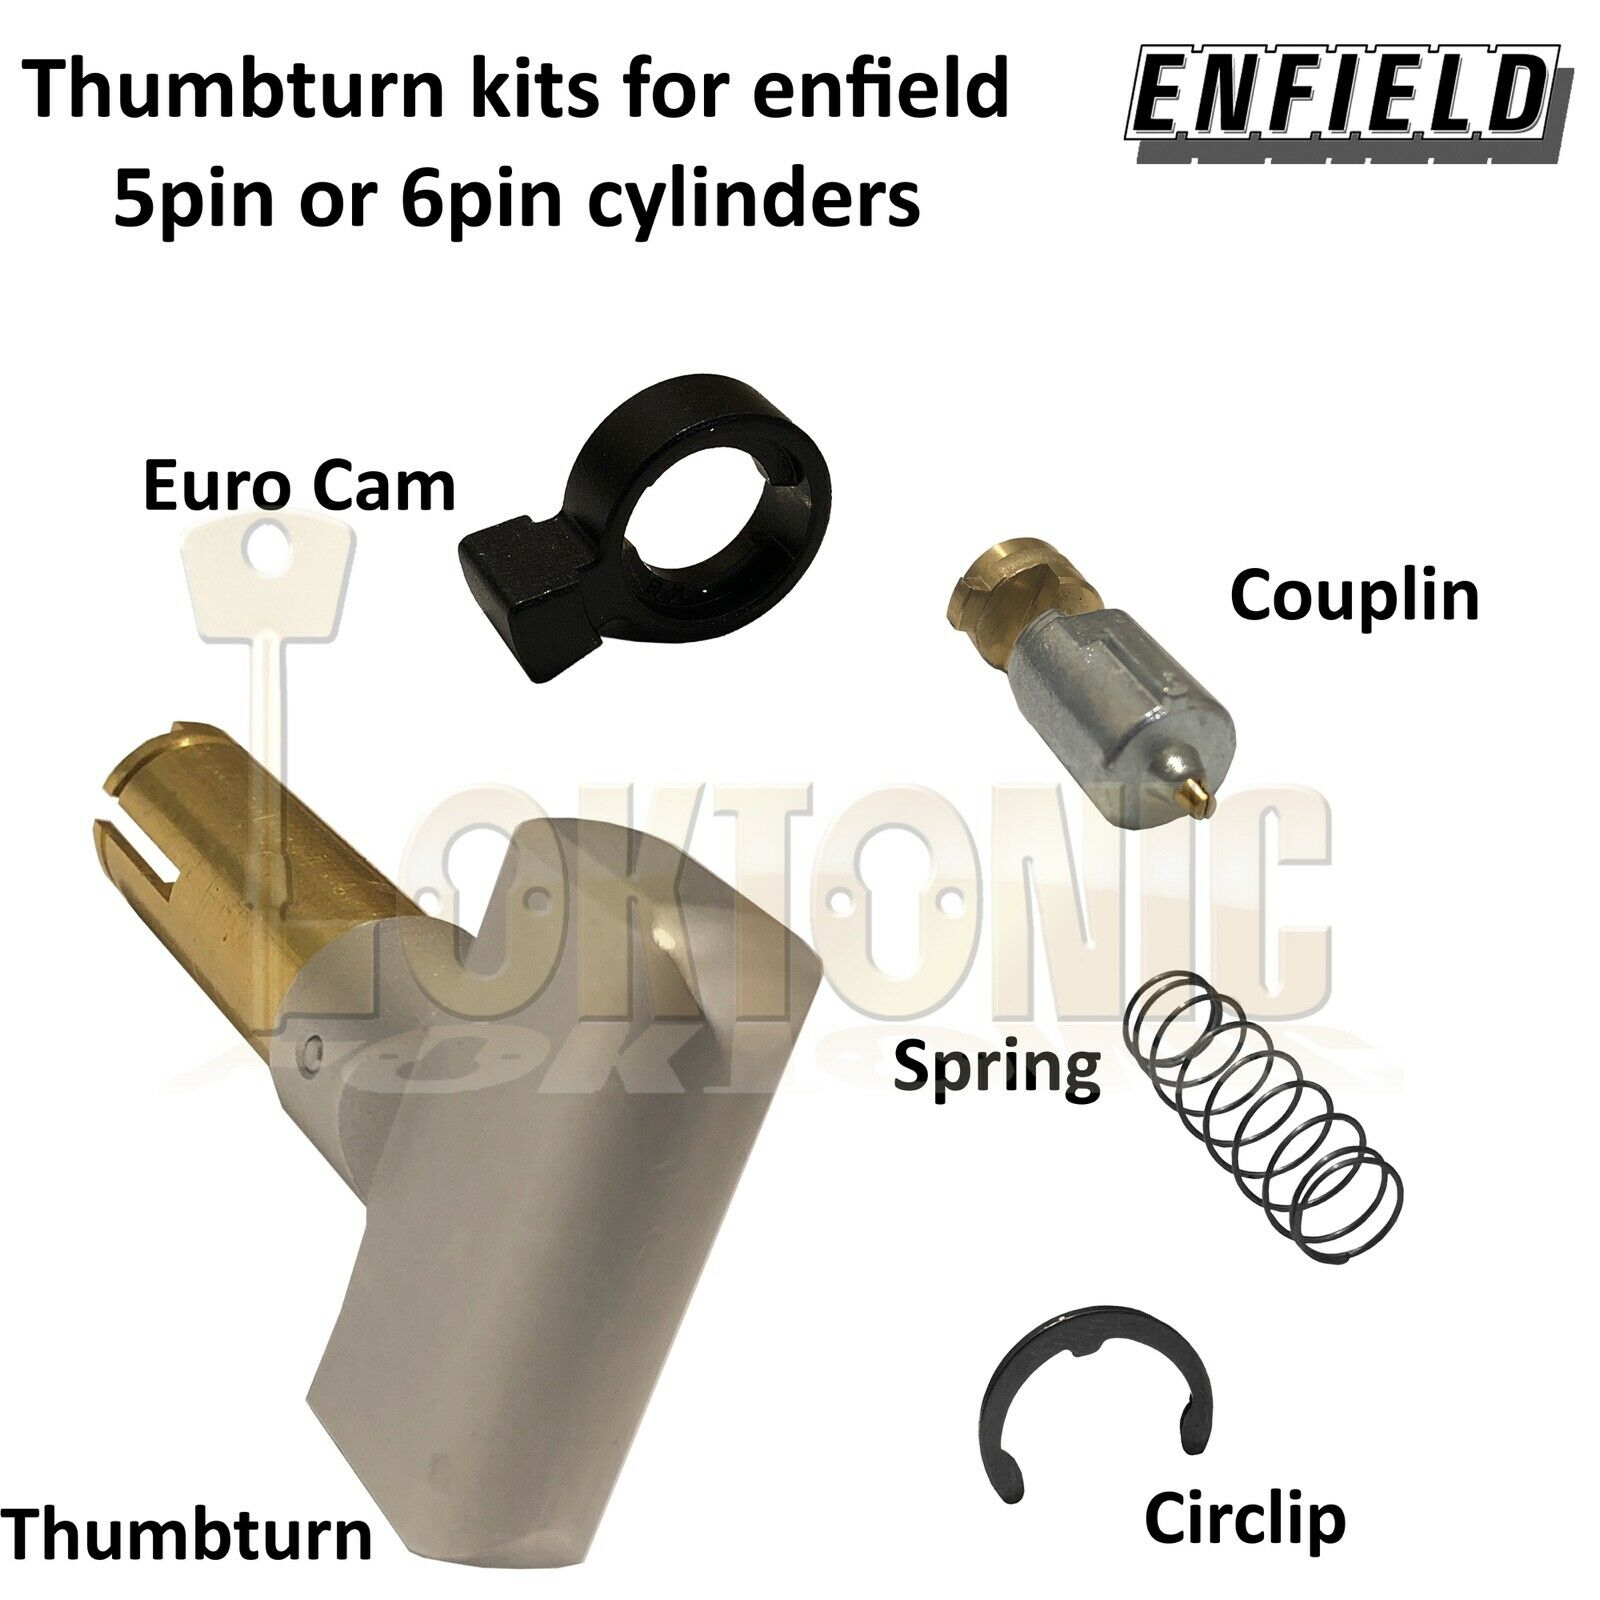 Enfield Genuine Thumb-turn cylinder conversion kit FDKN35